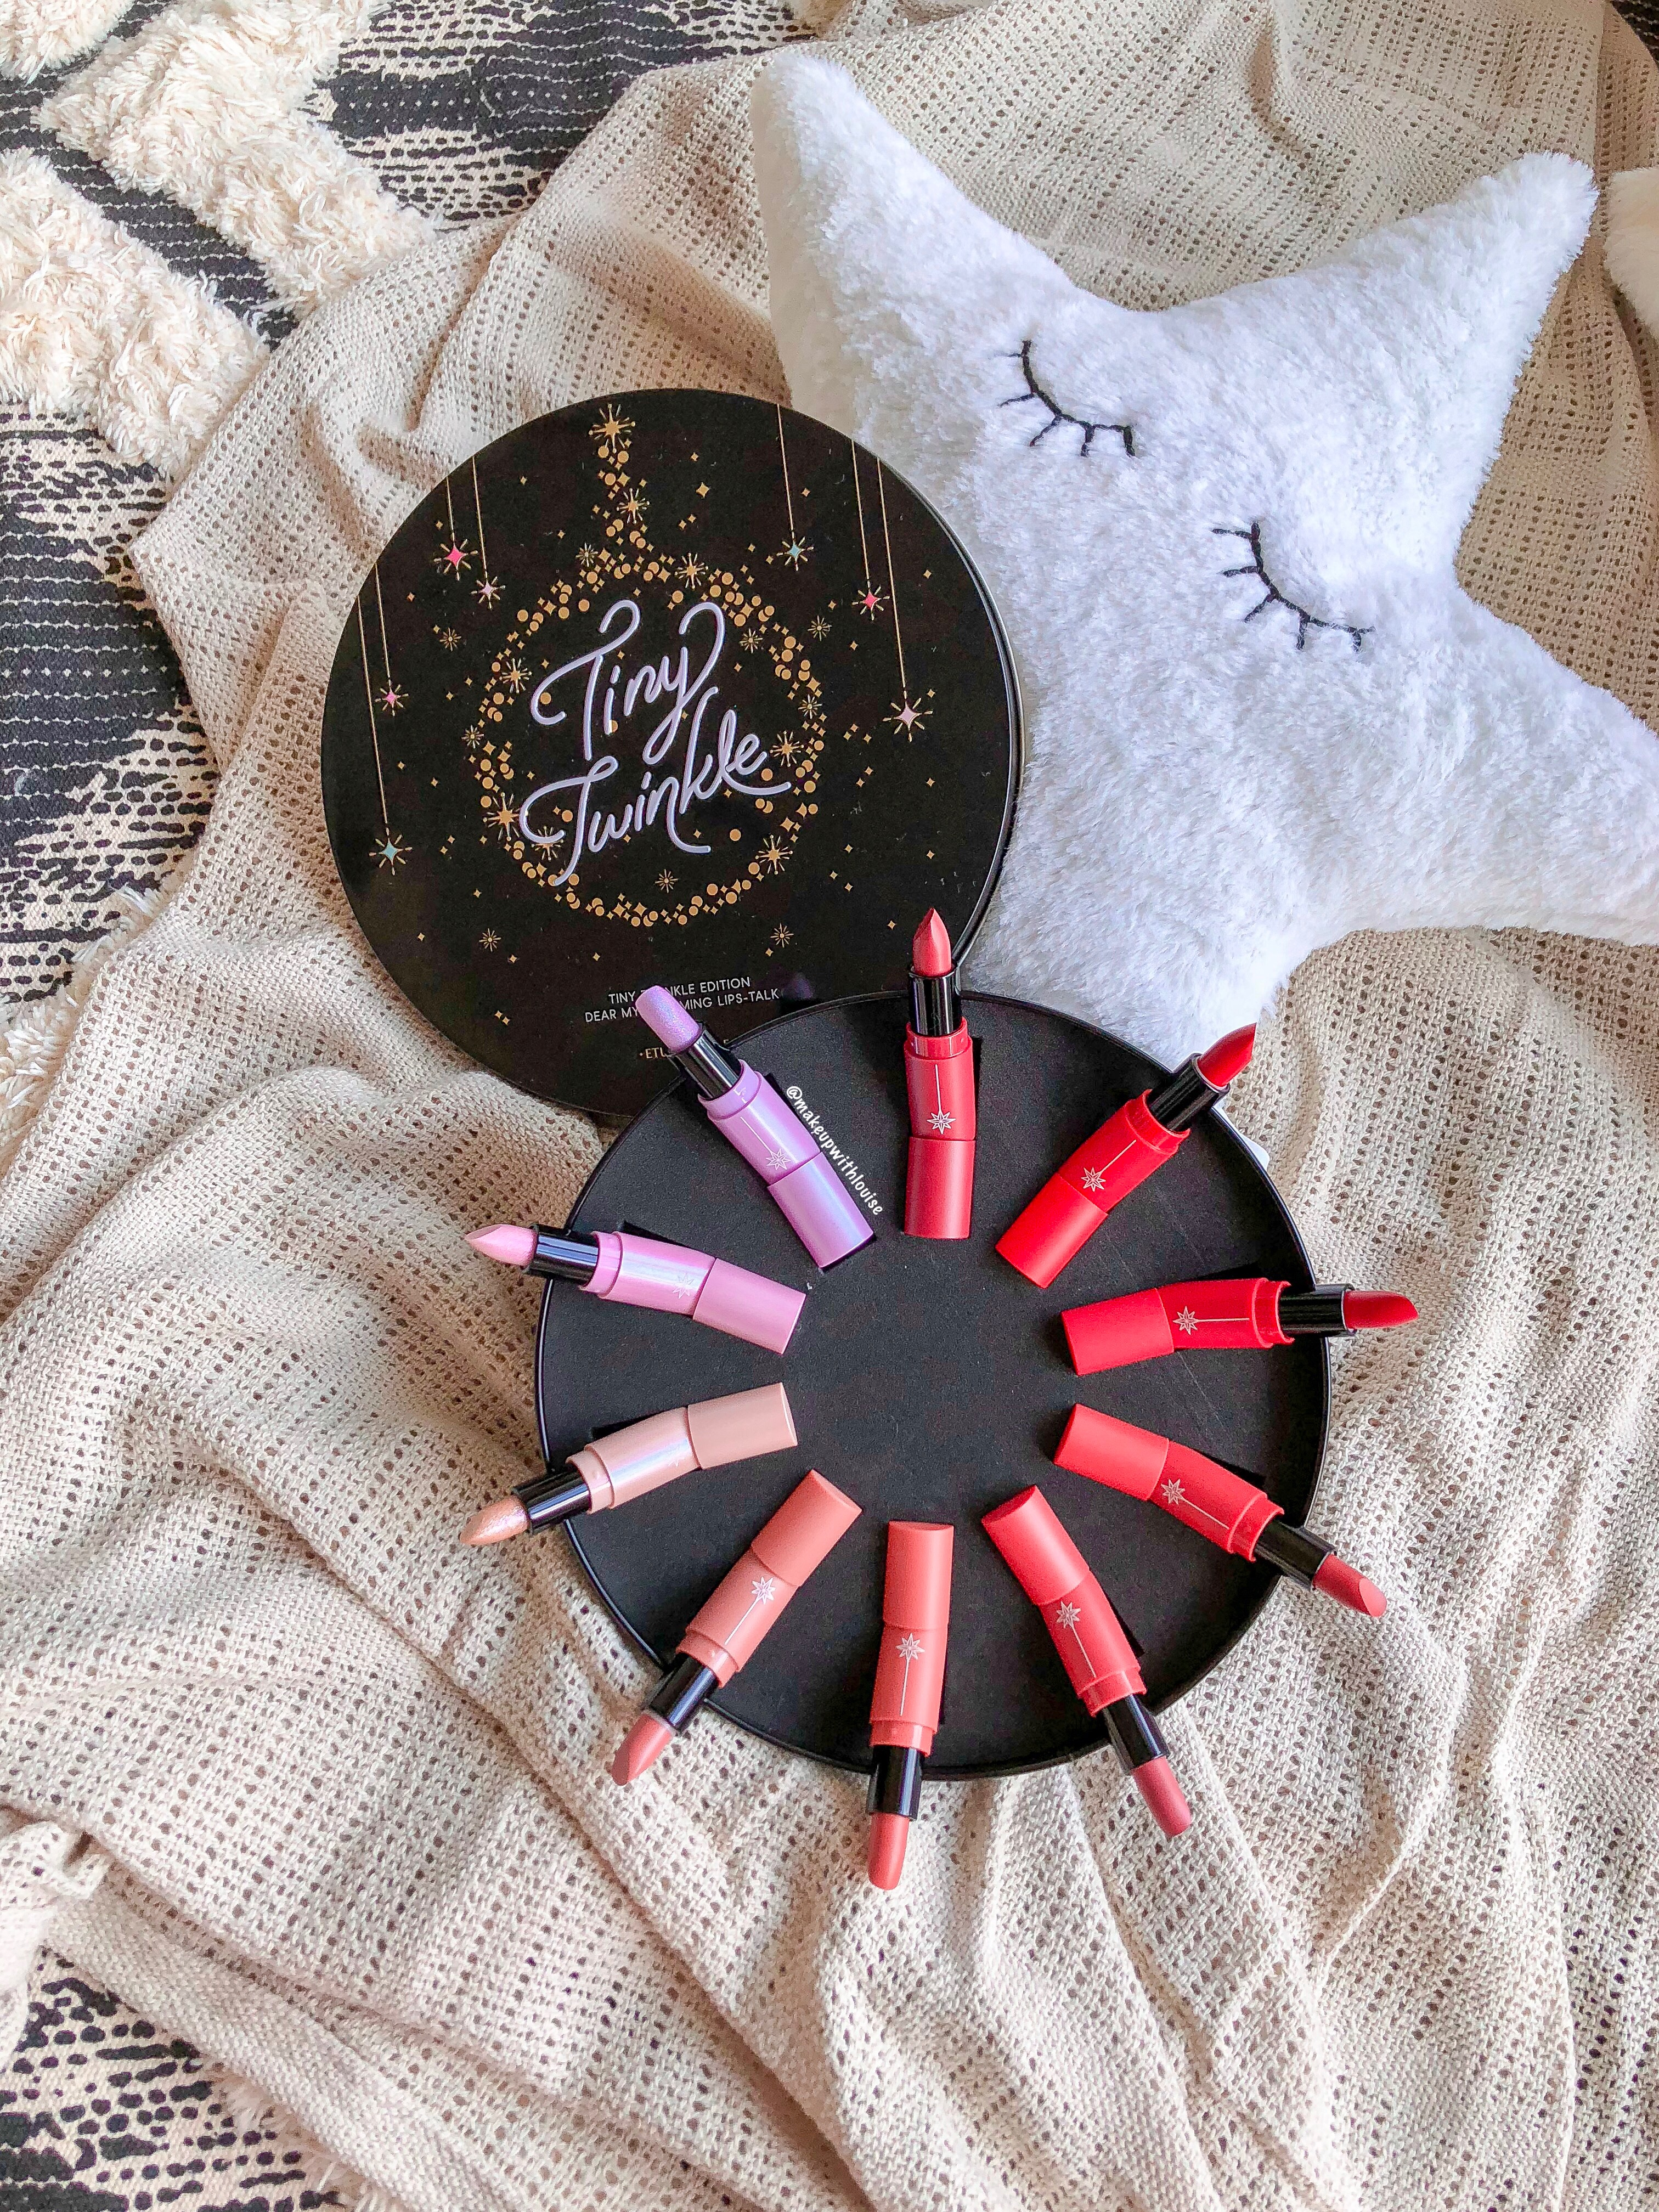 NEW Etude House Tiny Twinkle – Dear My Blooming Lips (All 10 shades) – YouTube Swatch :)